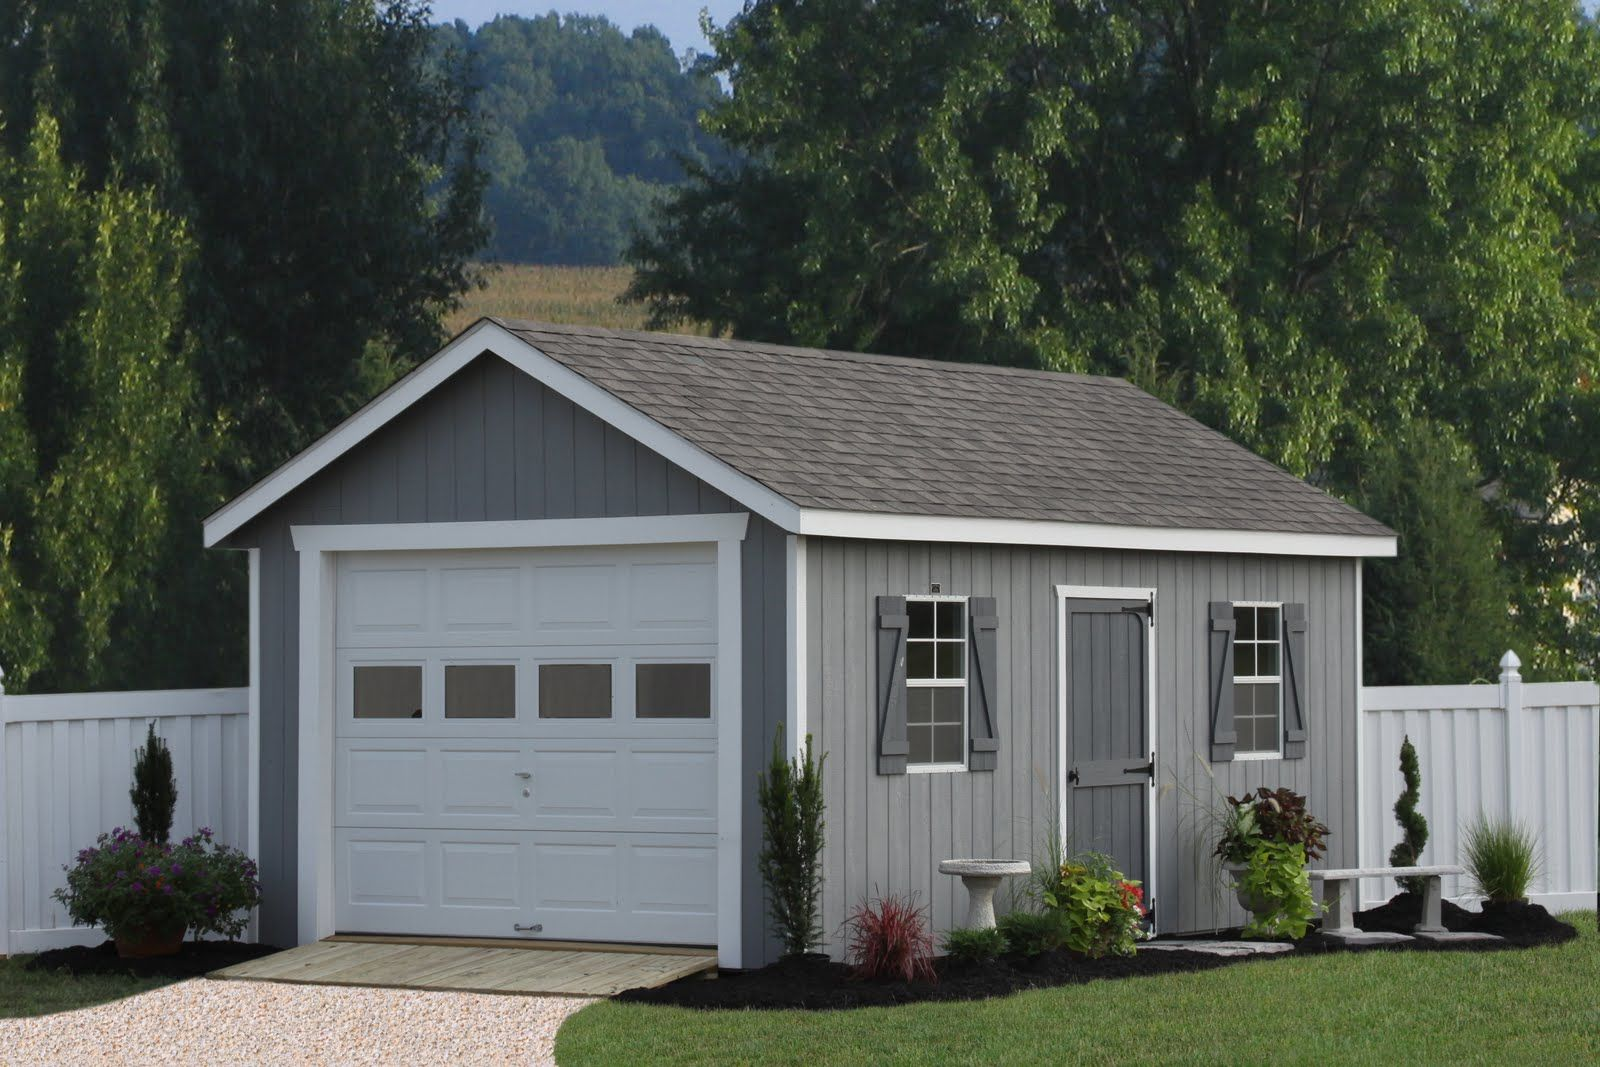 Add on garage plans 12x20 classic one car garage for Small cottage plans with garage